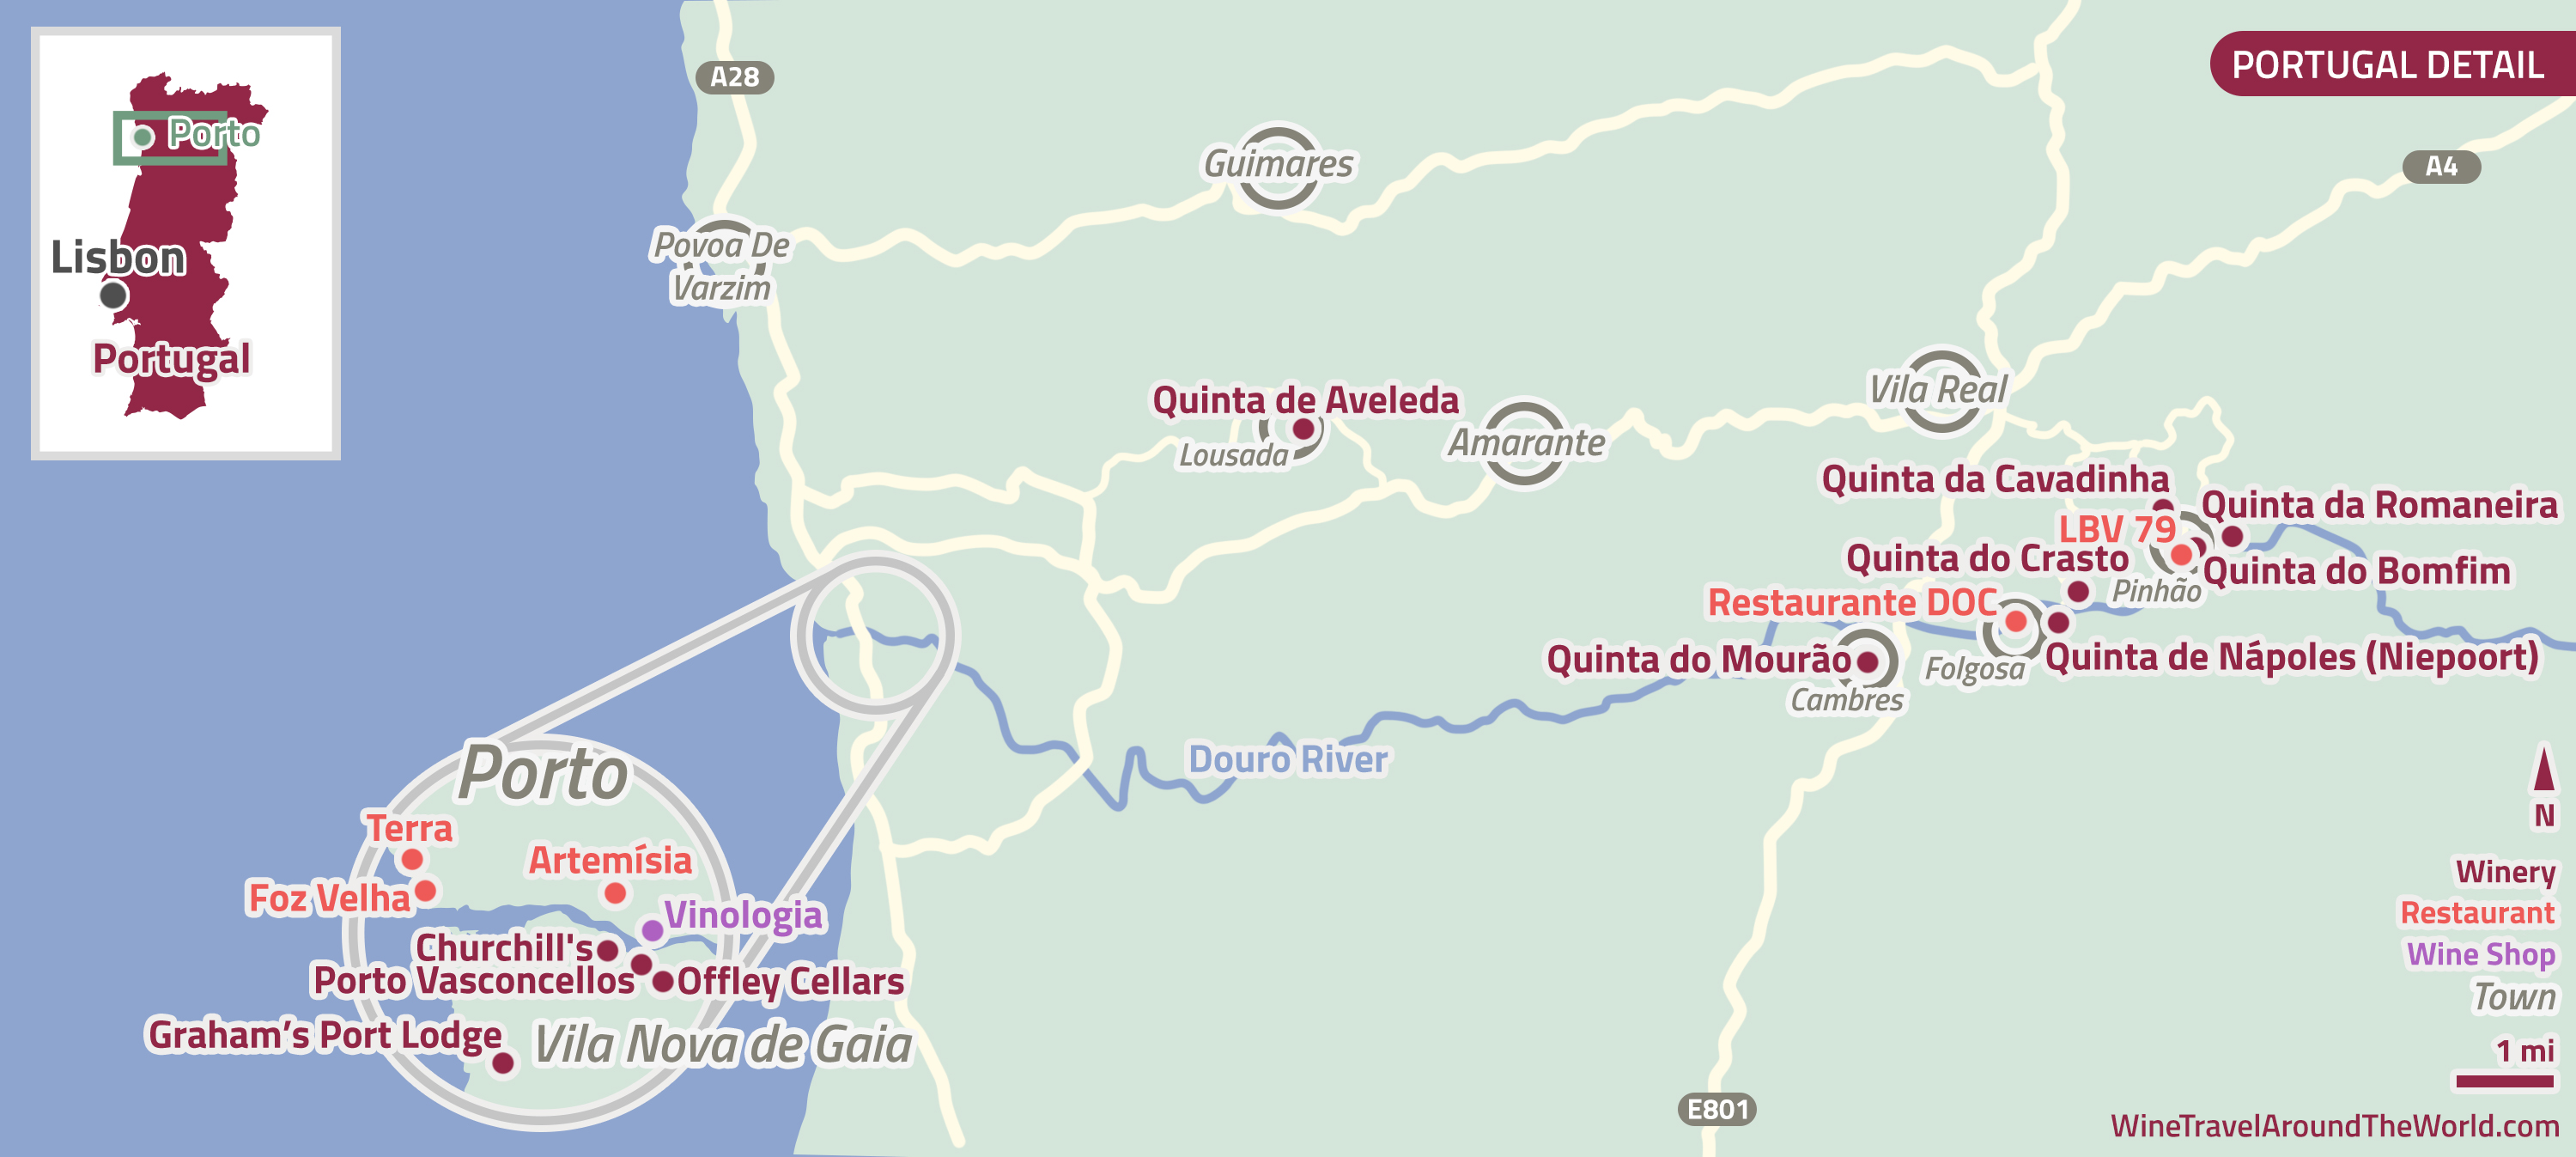 Porto Vila Nova de Gaia and the Douro Visits to Churchills Dow